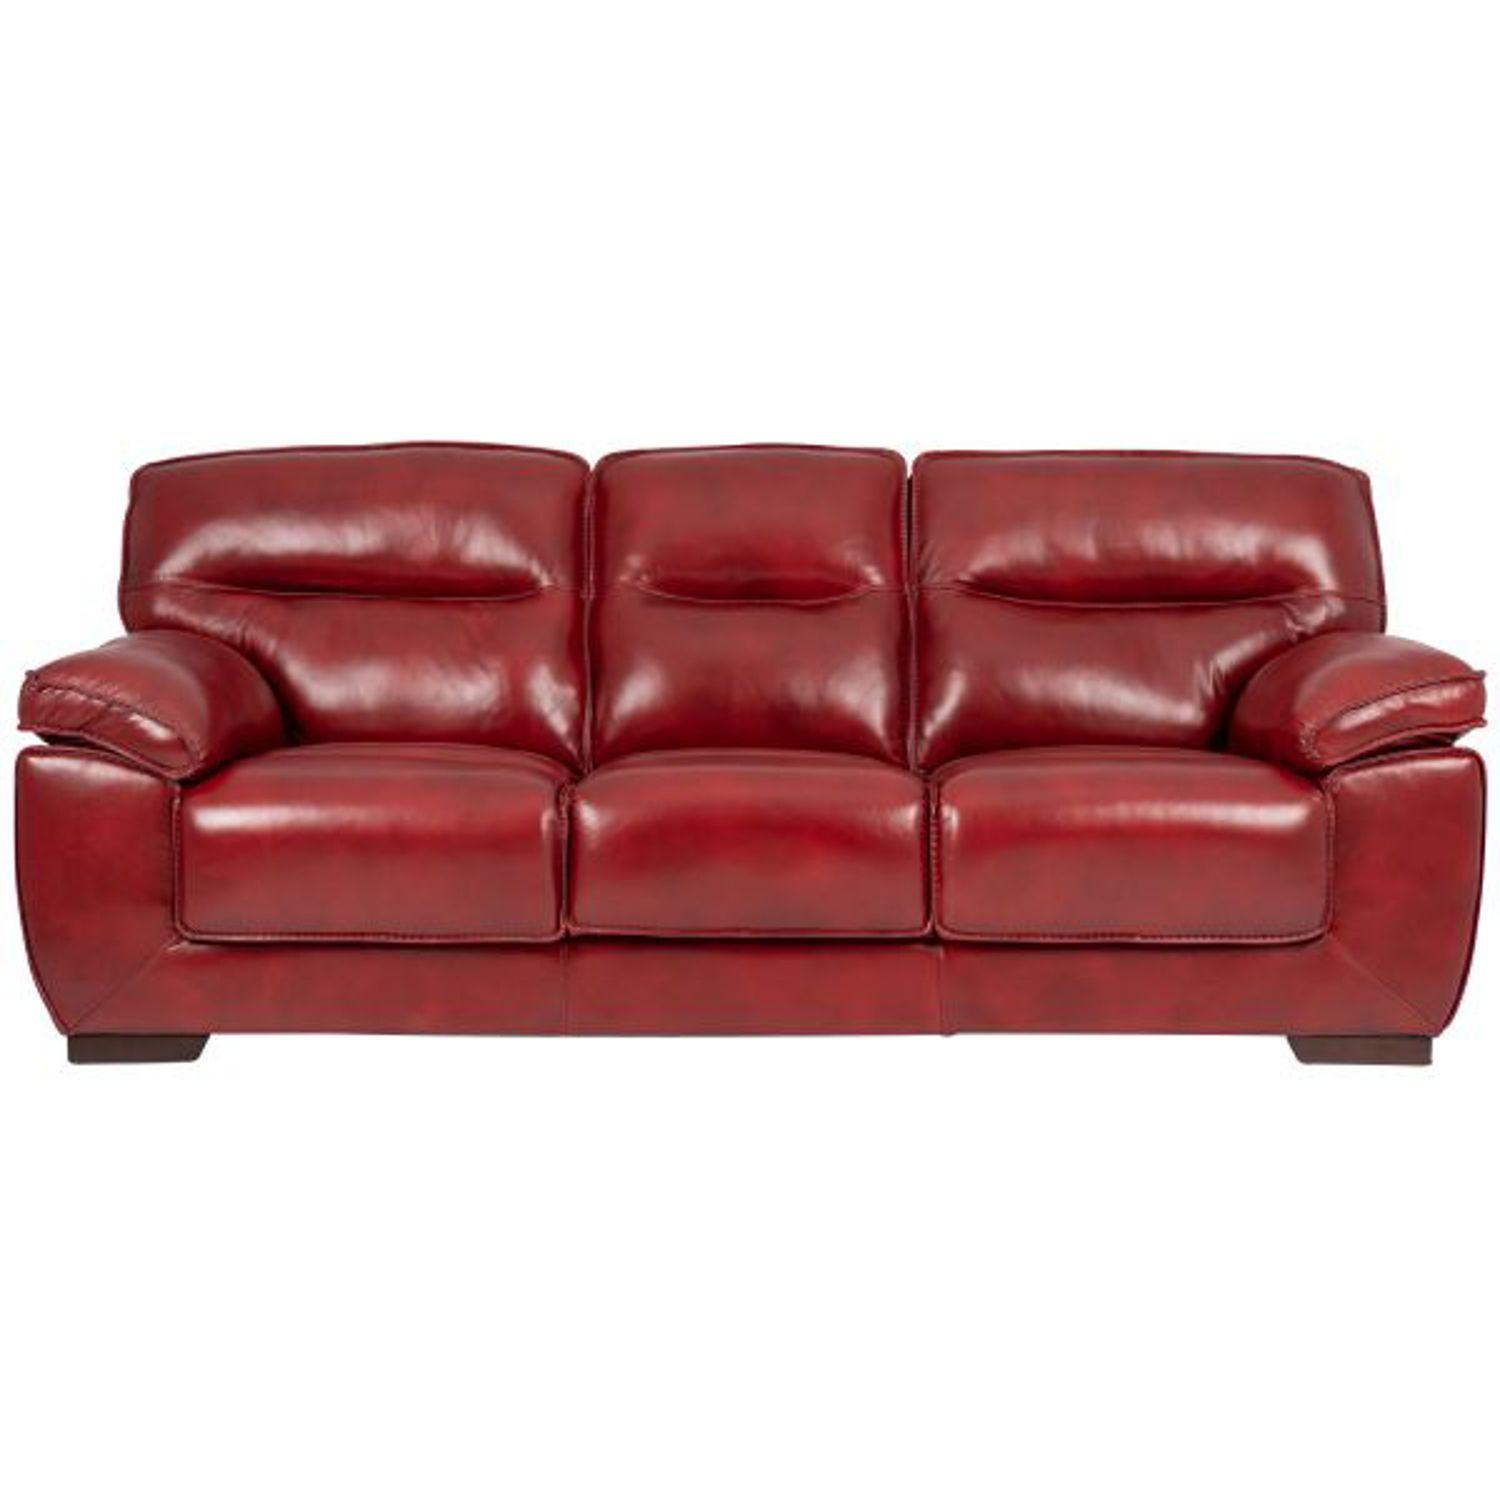 Fire Sofa In 2020 Red Leather Couches Best Leather Sofa Red Sofa